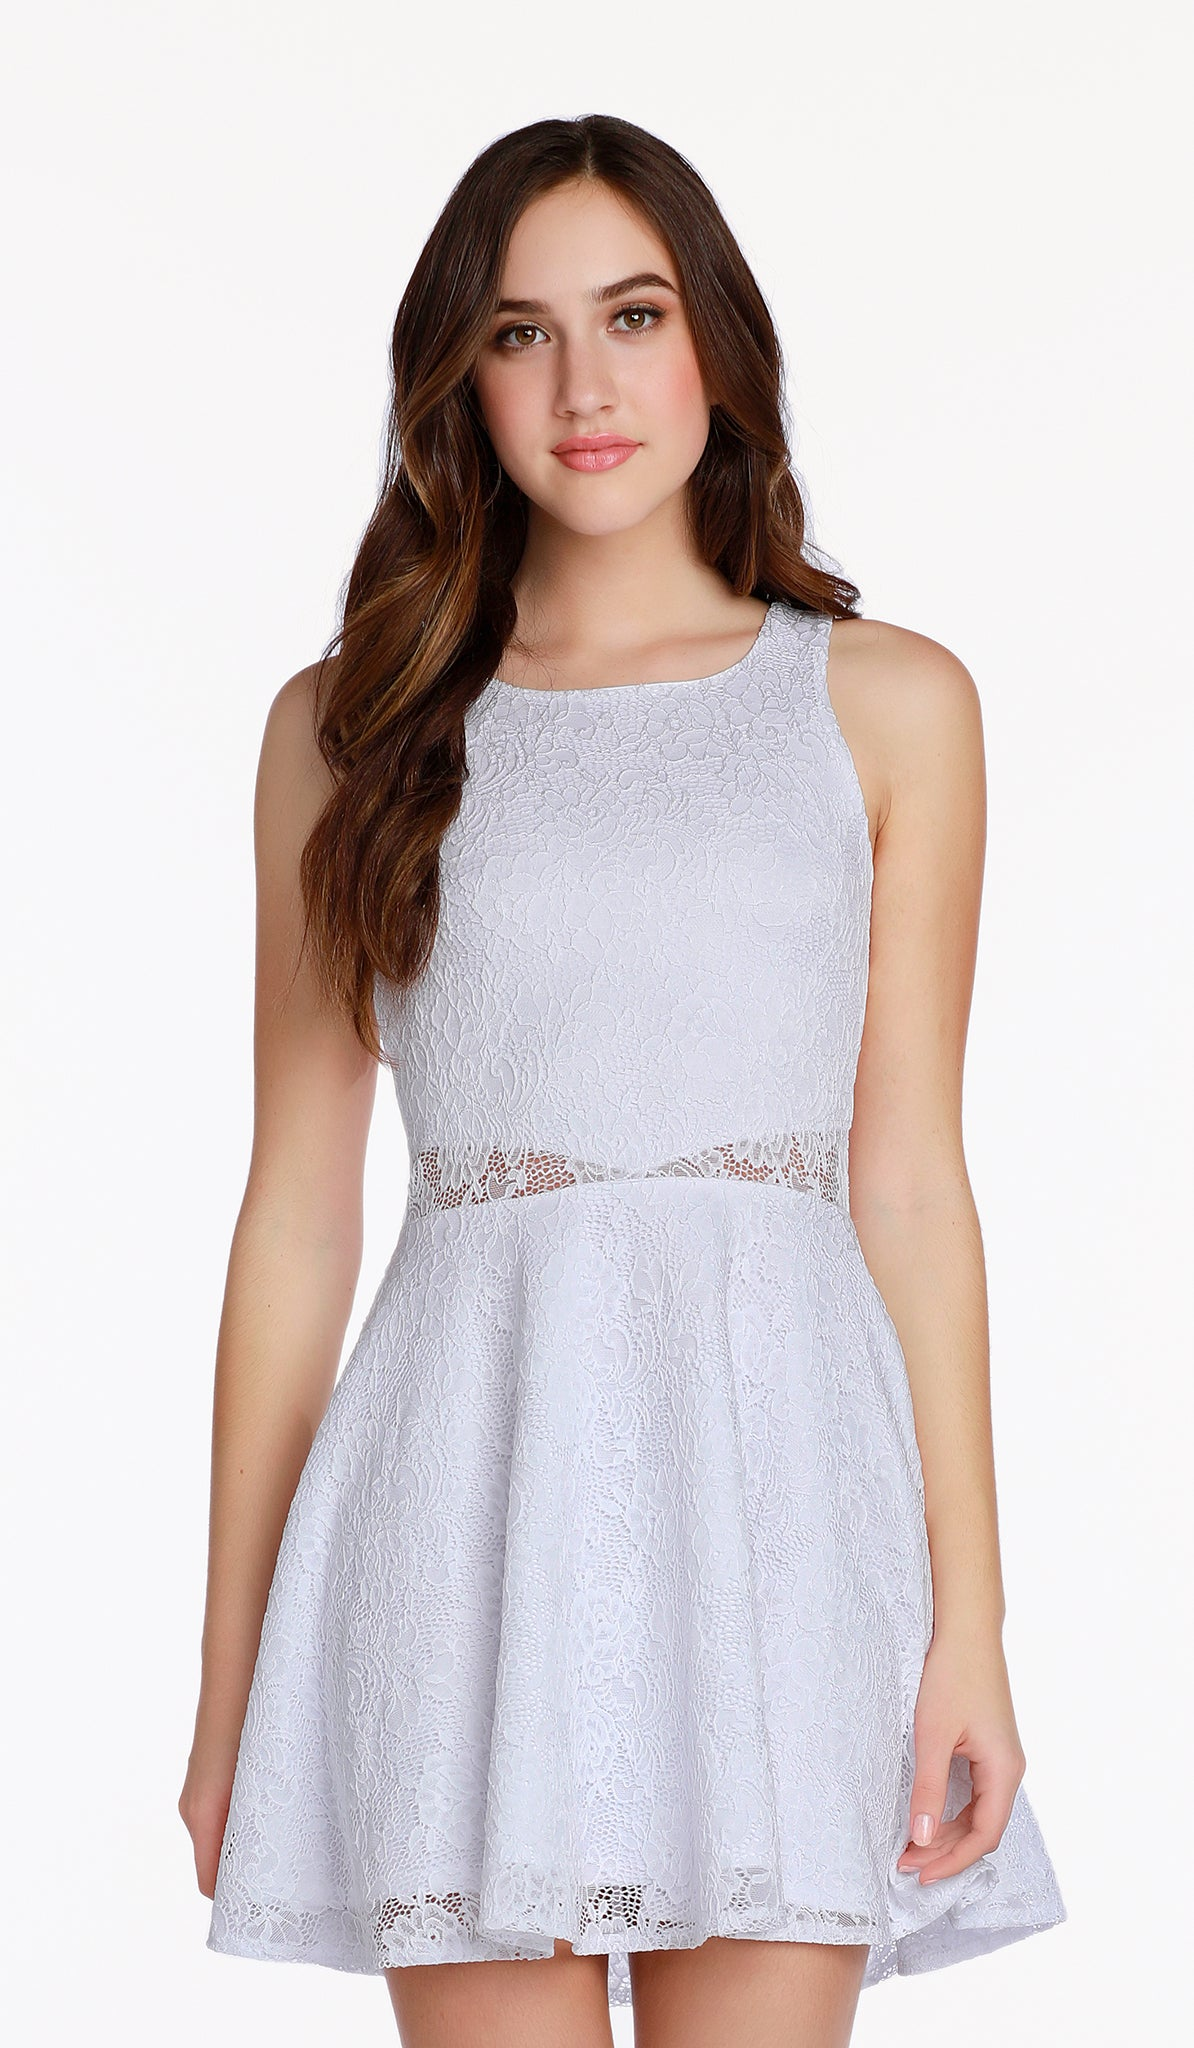 The Sally Miller Rene Dress Juniors - White stretch crochet lace fit and flare dress with illusion waist